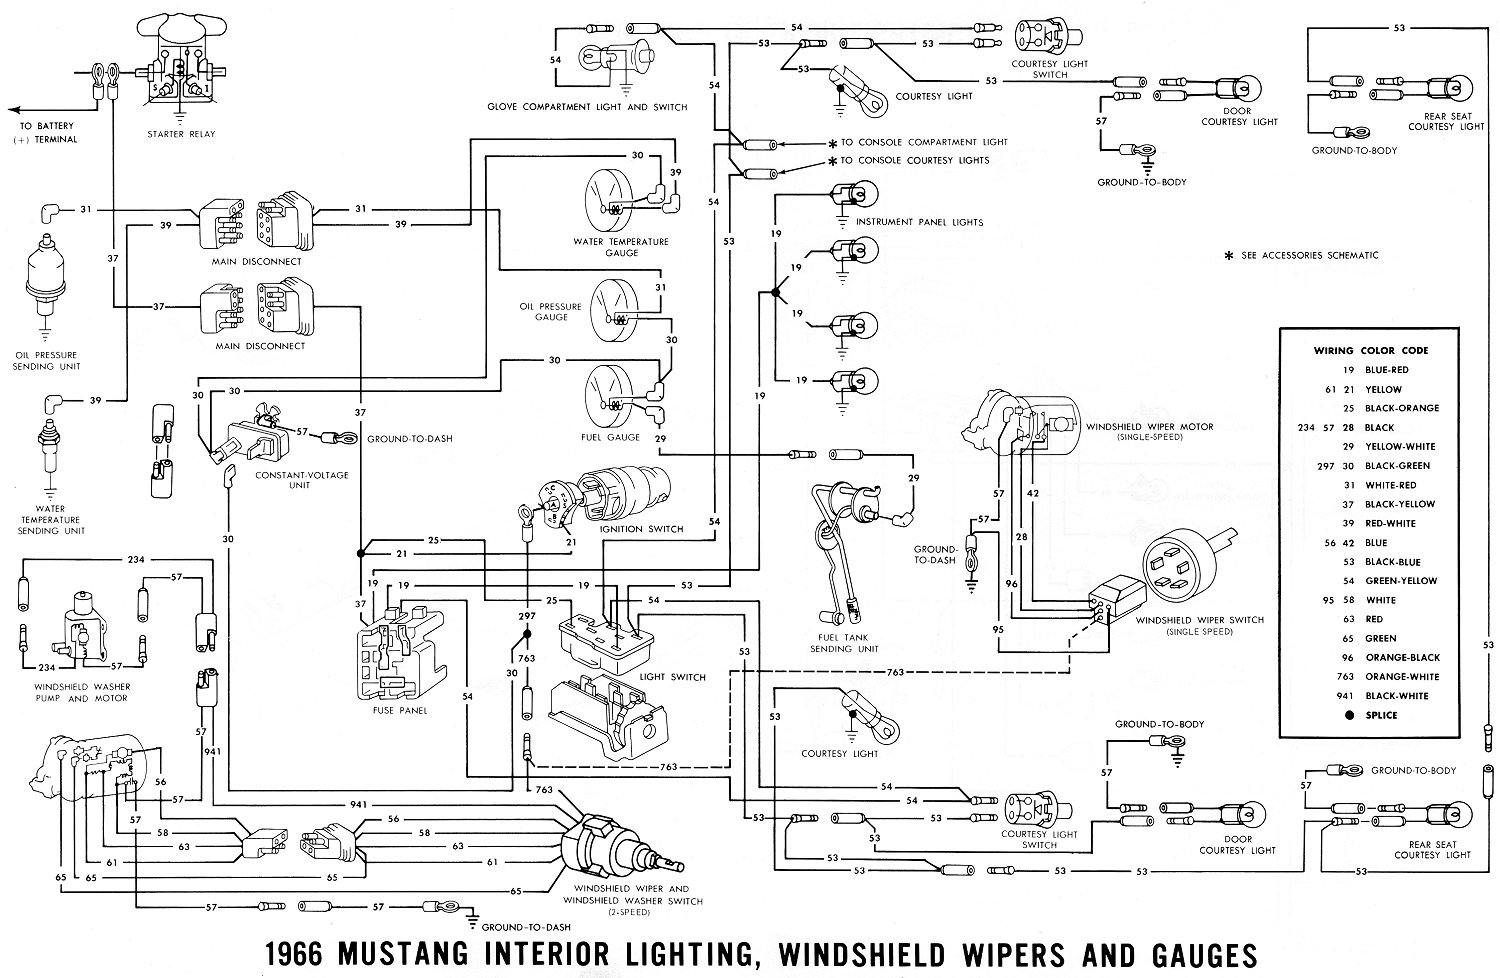 66inter1 1966 mustang wiring diagrams average joe restoration instrument wiring diagram at honlapkeszites.co